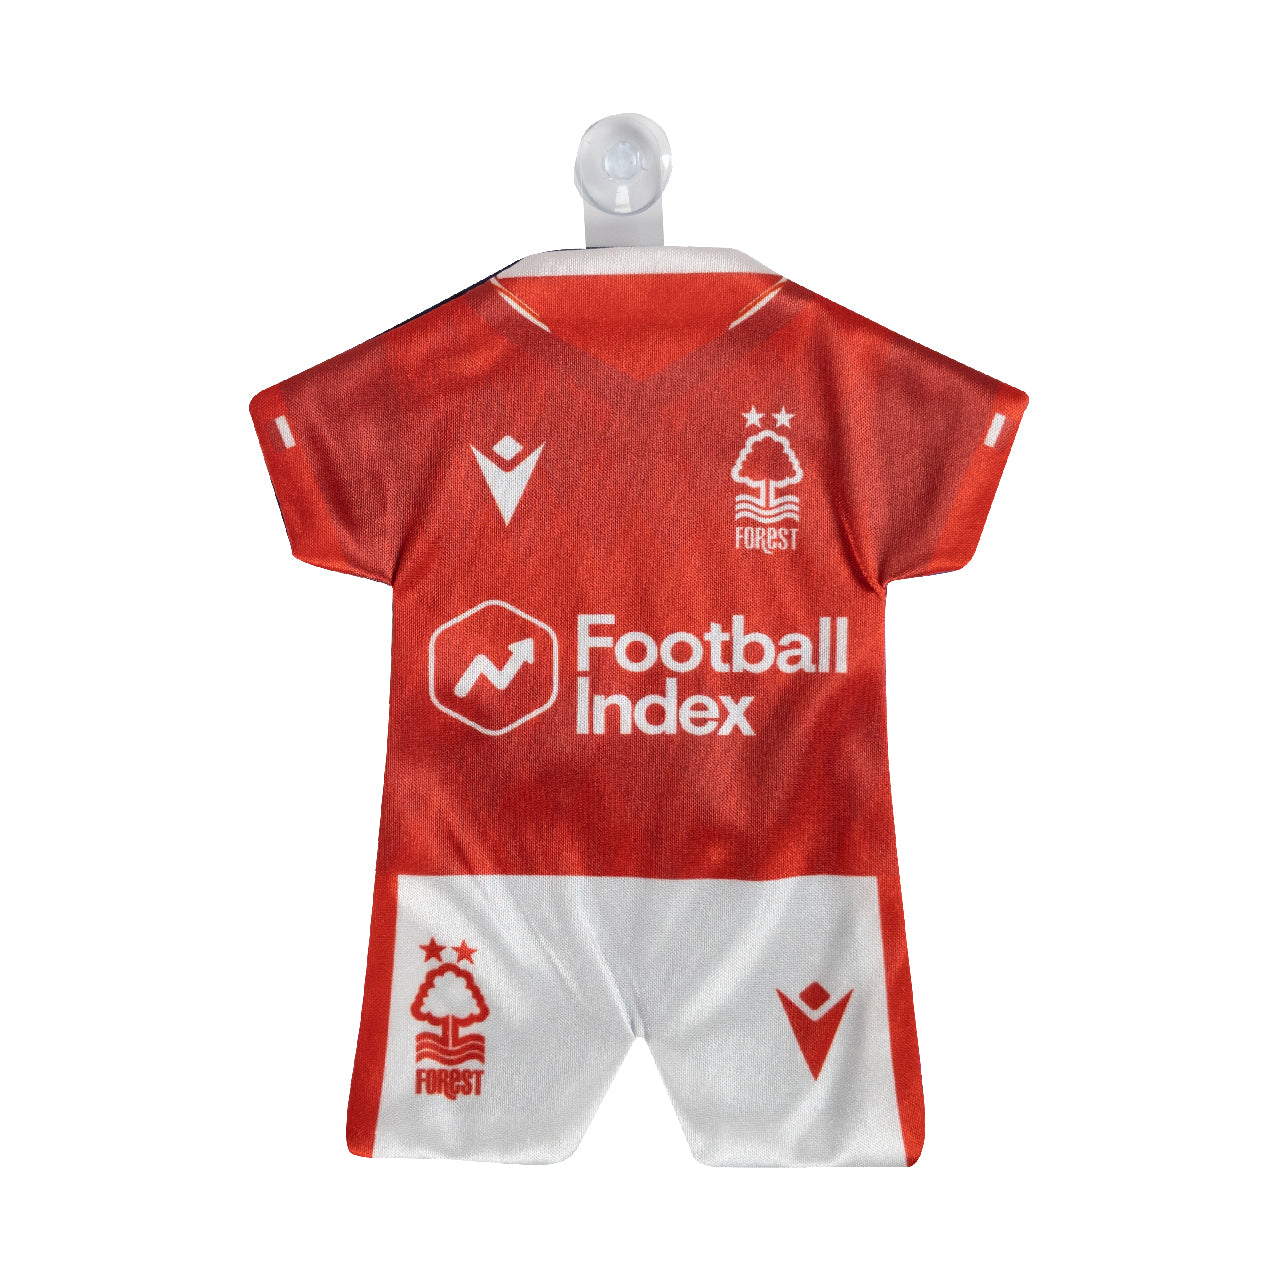 NFFC Car Kit Hanger 19/20